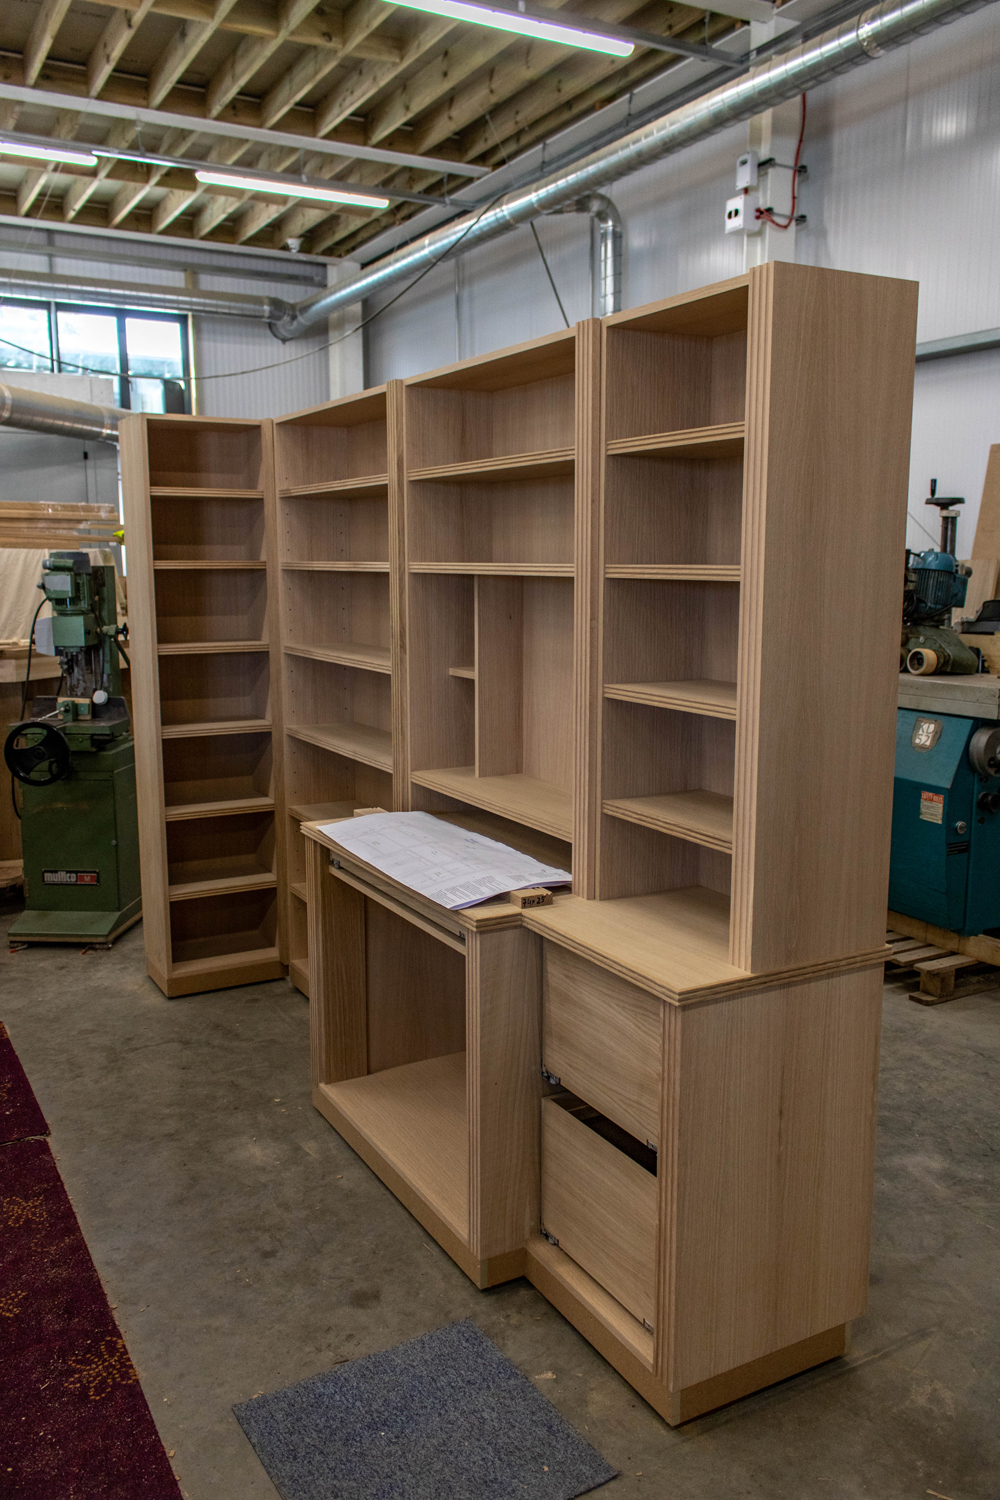 wooden set of shelves and cabinetry in workshop